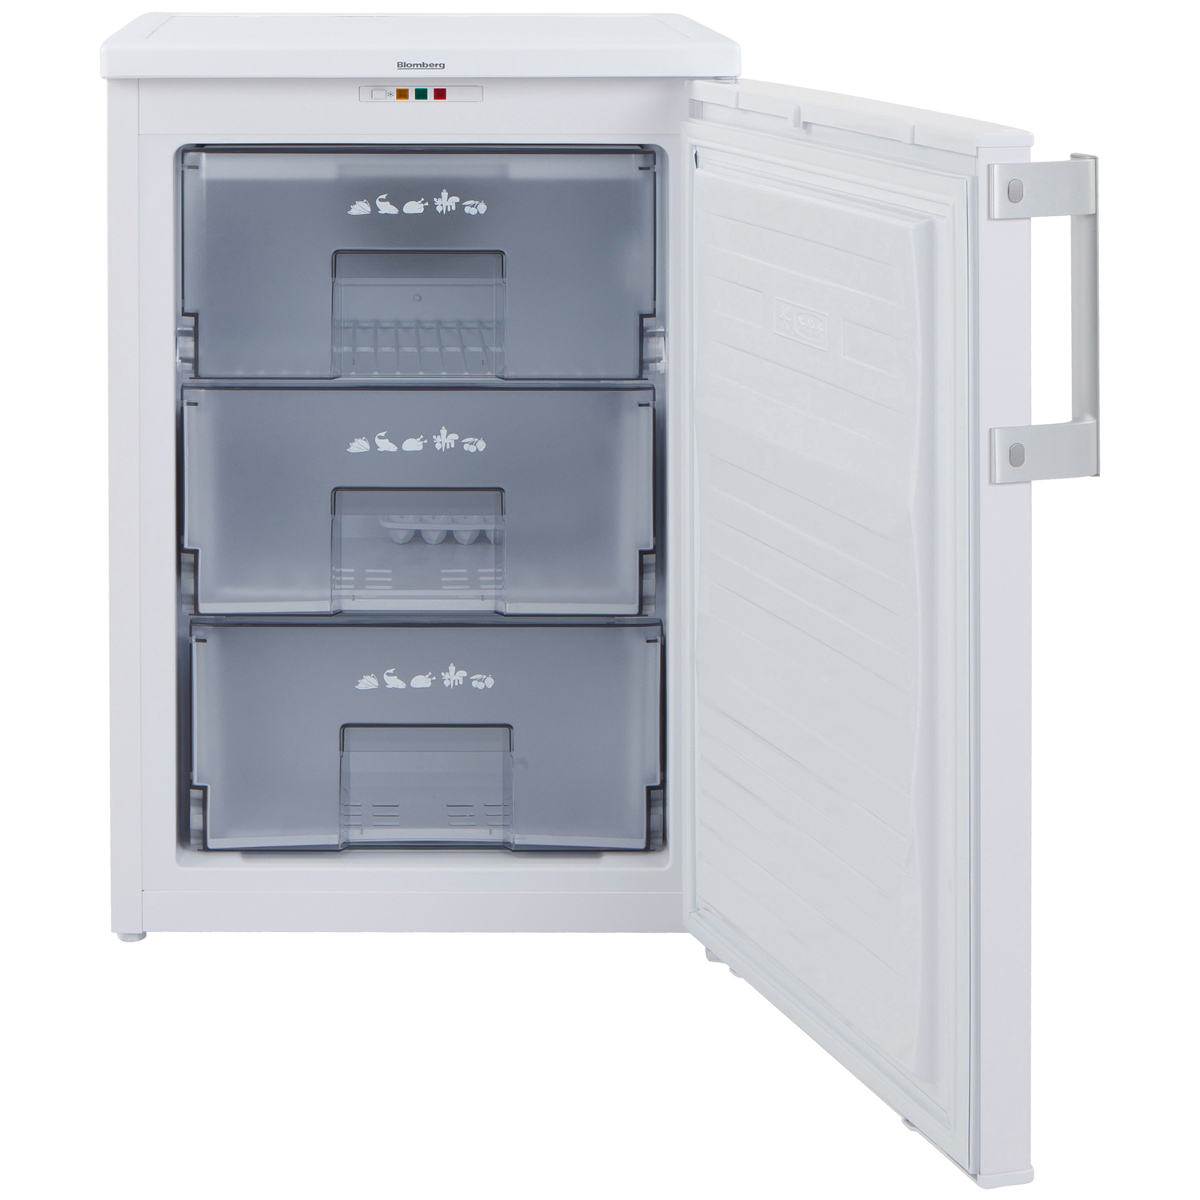 Blomberg Fne1531p Frost Free Freezer Discount Appliance